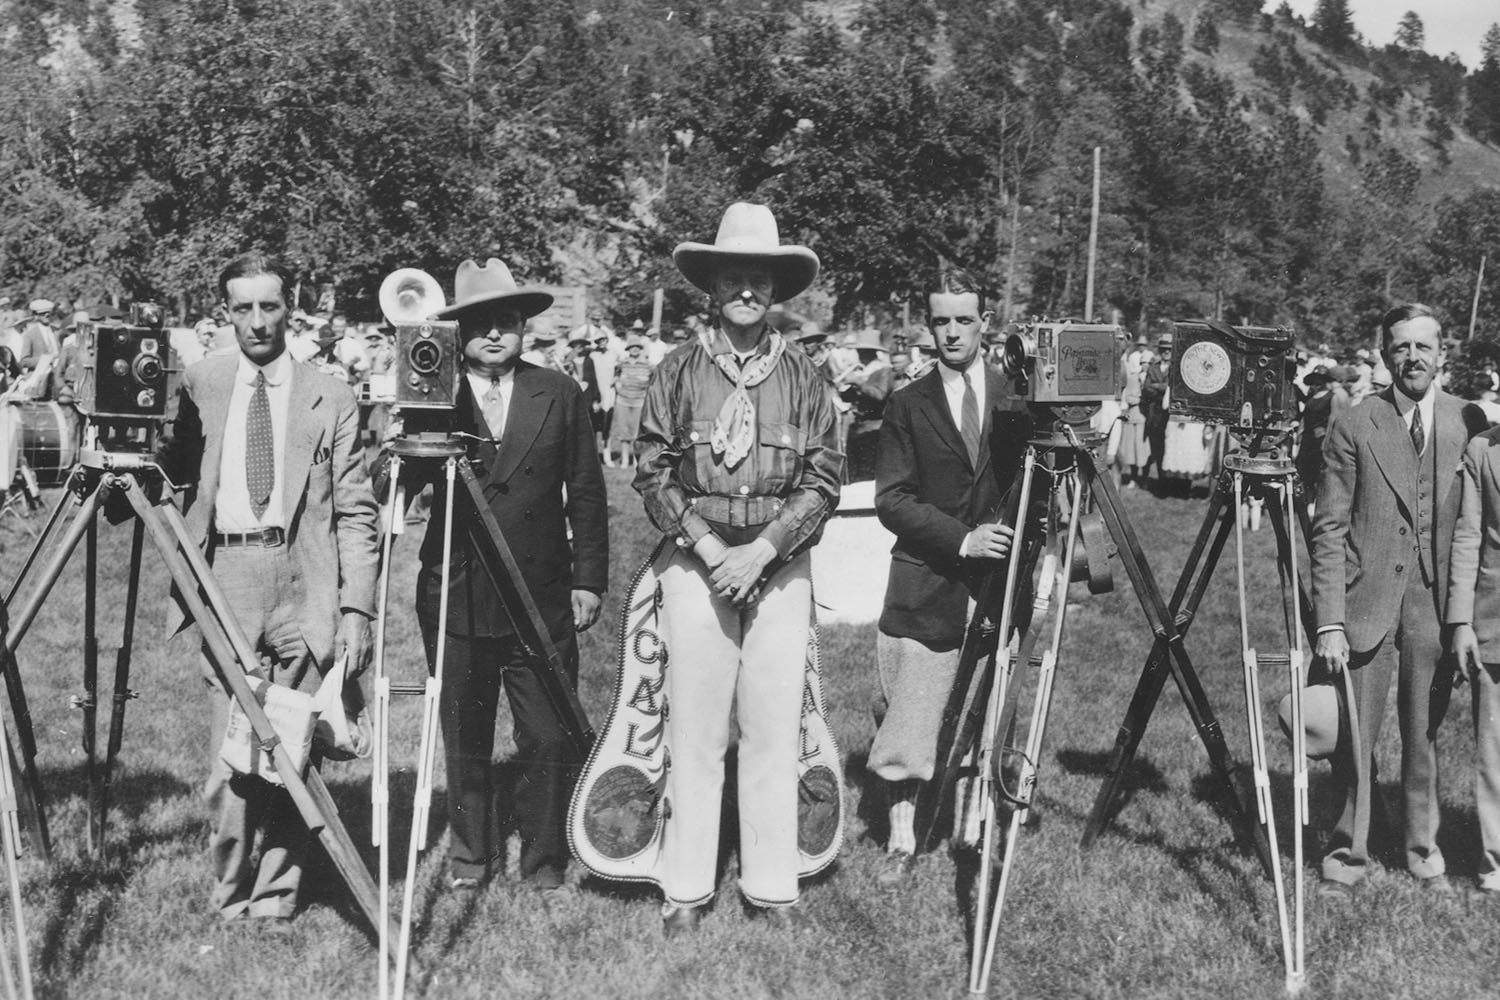 President Calvin Coolidge, clad in cowboy attire, poses with photographers while celebrating the Fourth of July in Rapid City, North Dakota, July 4, 1927.